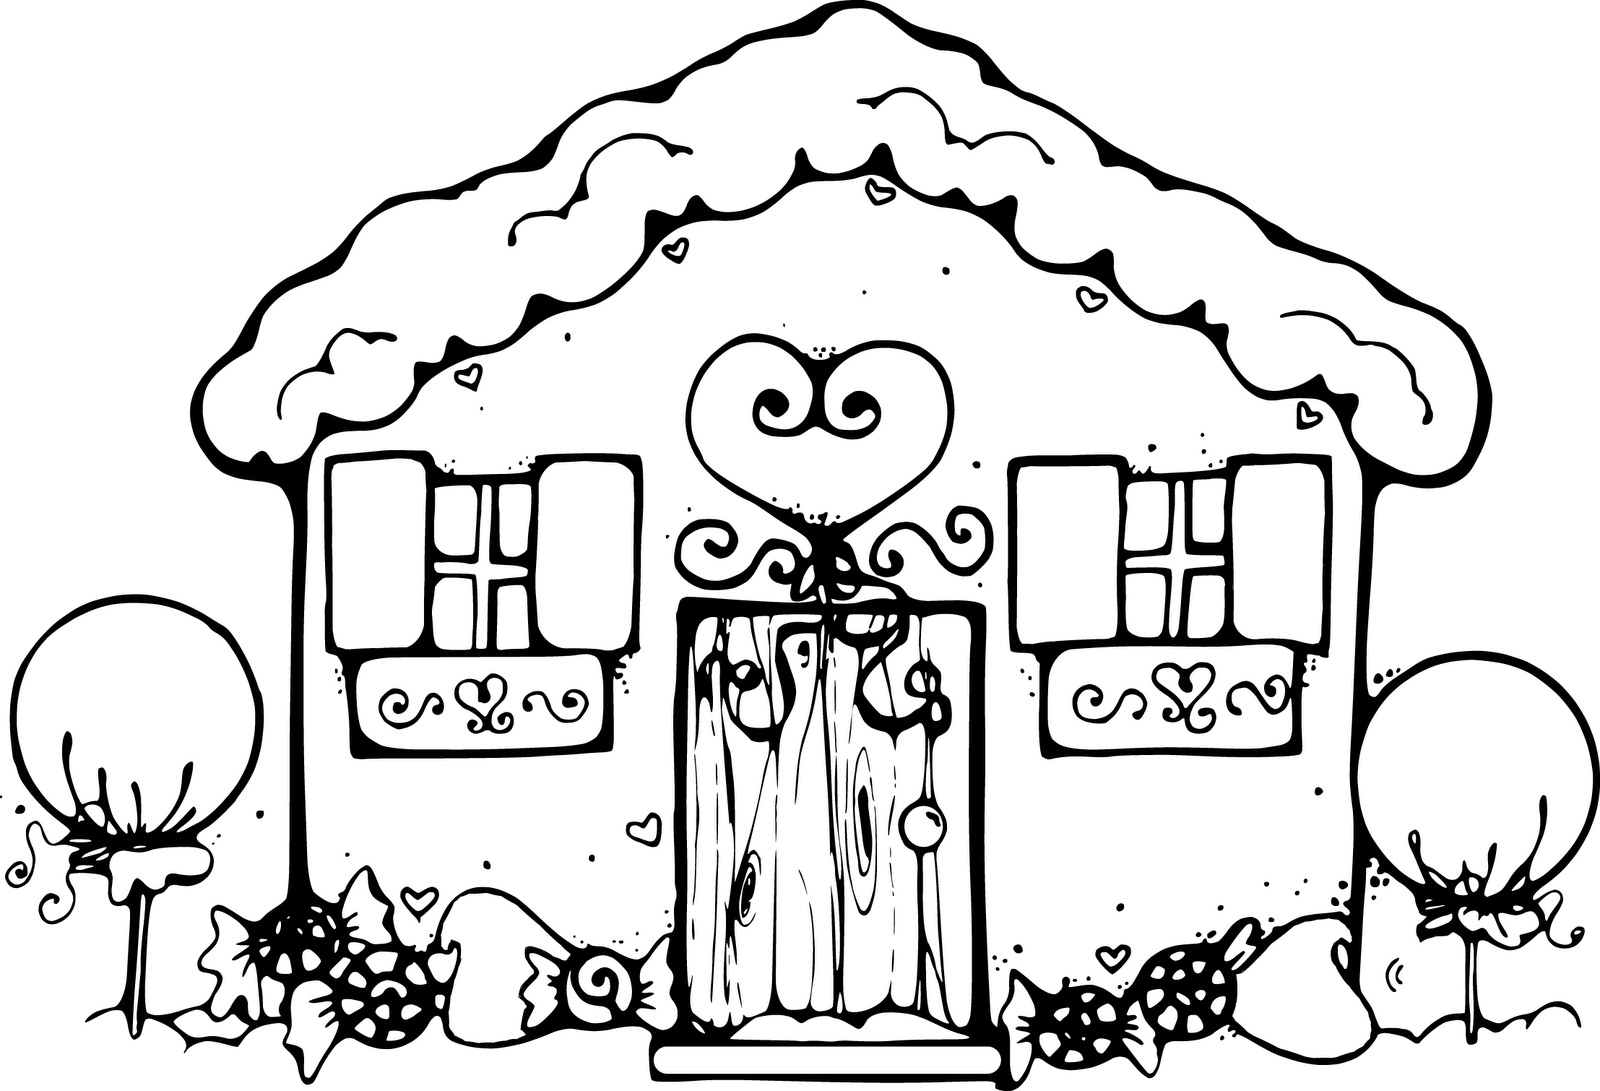 gingerbread house coloring sheet breathtaking gingerbread house coloring page pdf gingerbread house sheet coloring